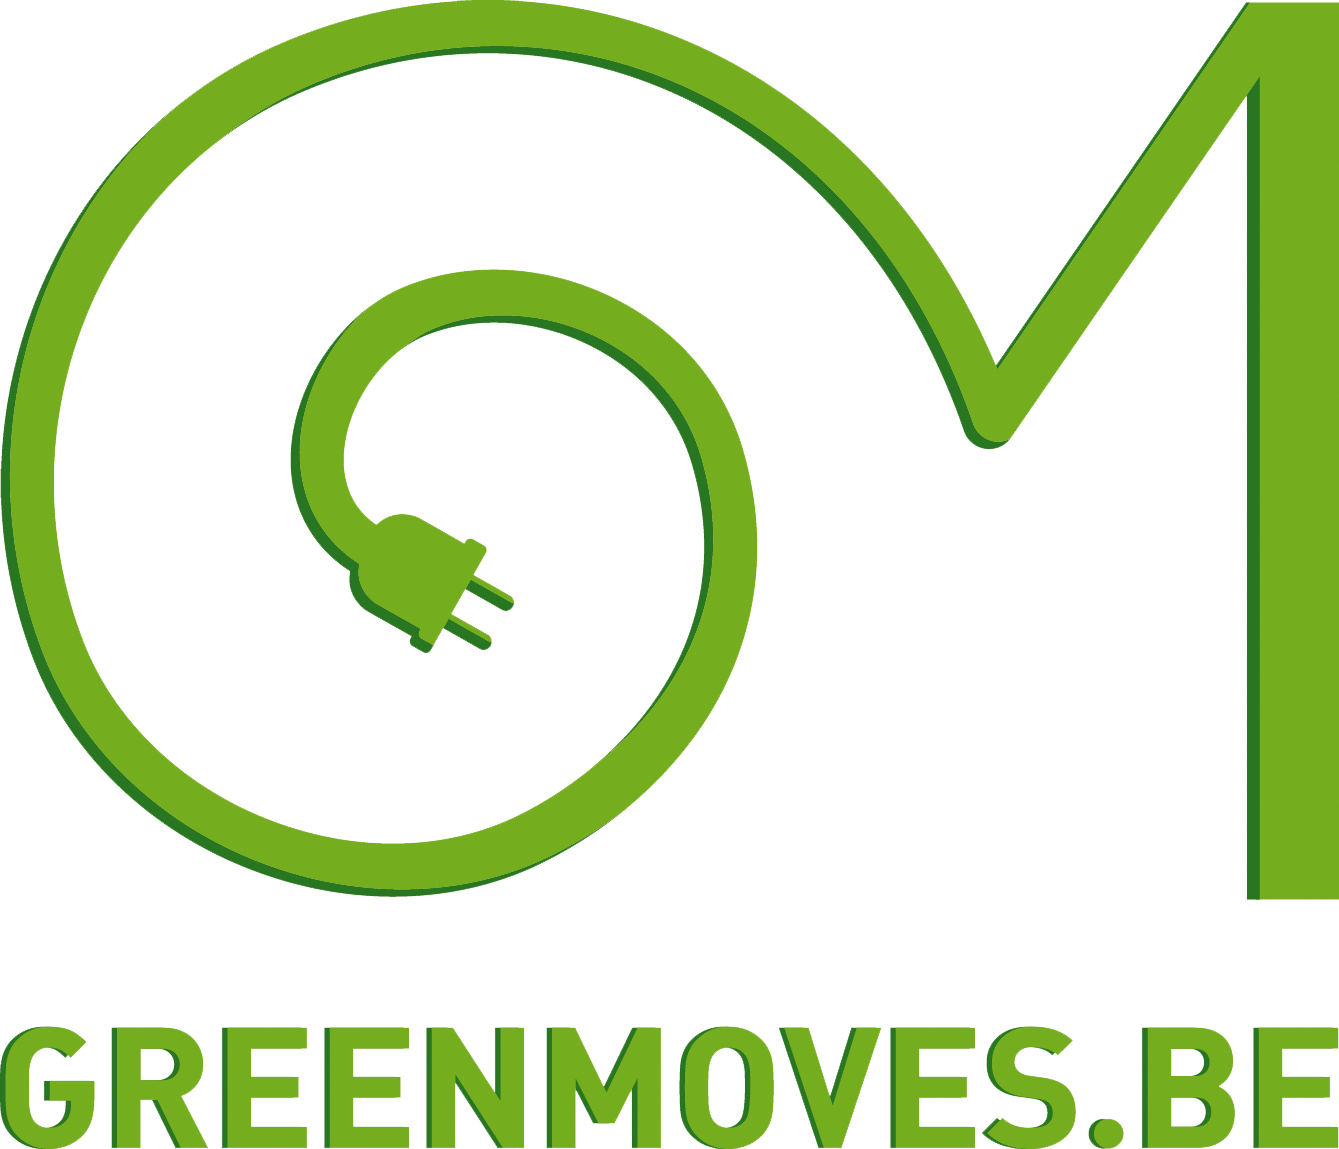 GreenMoves.be